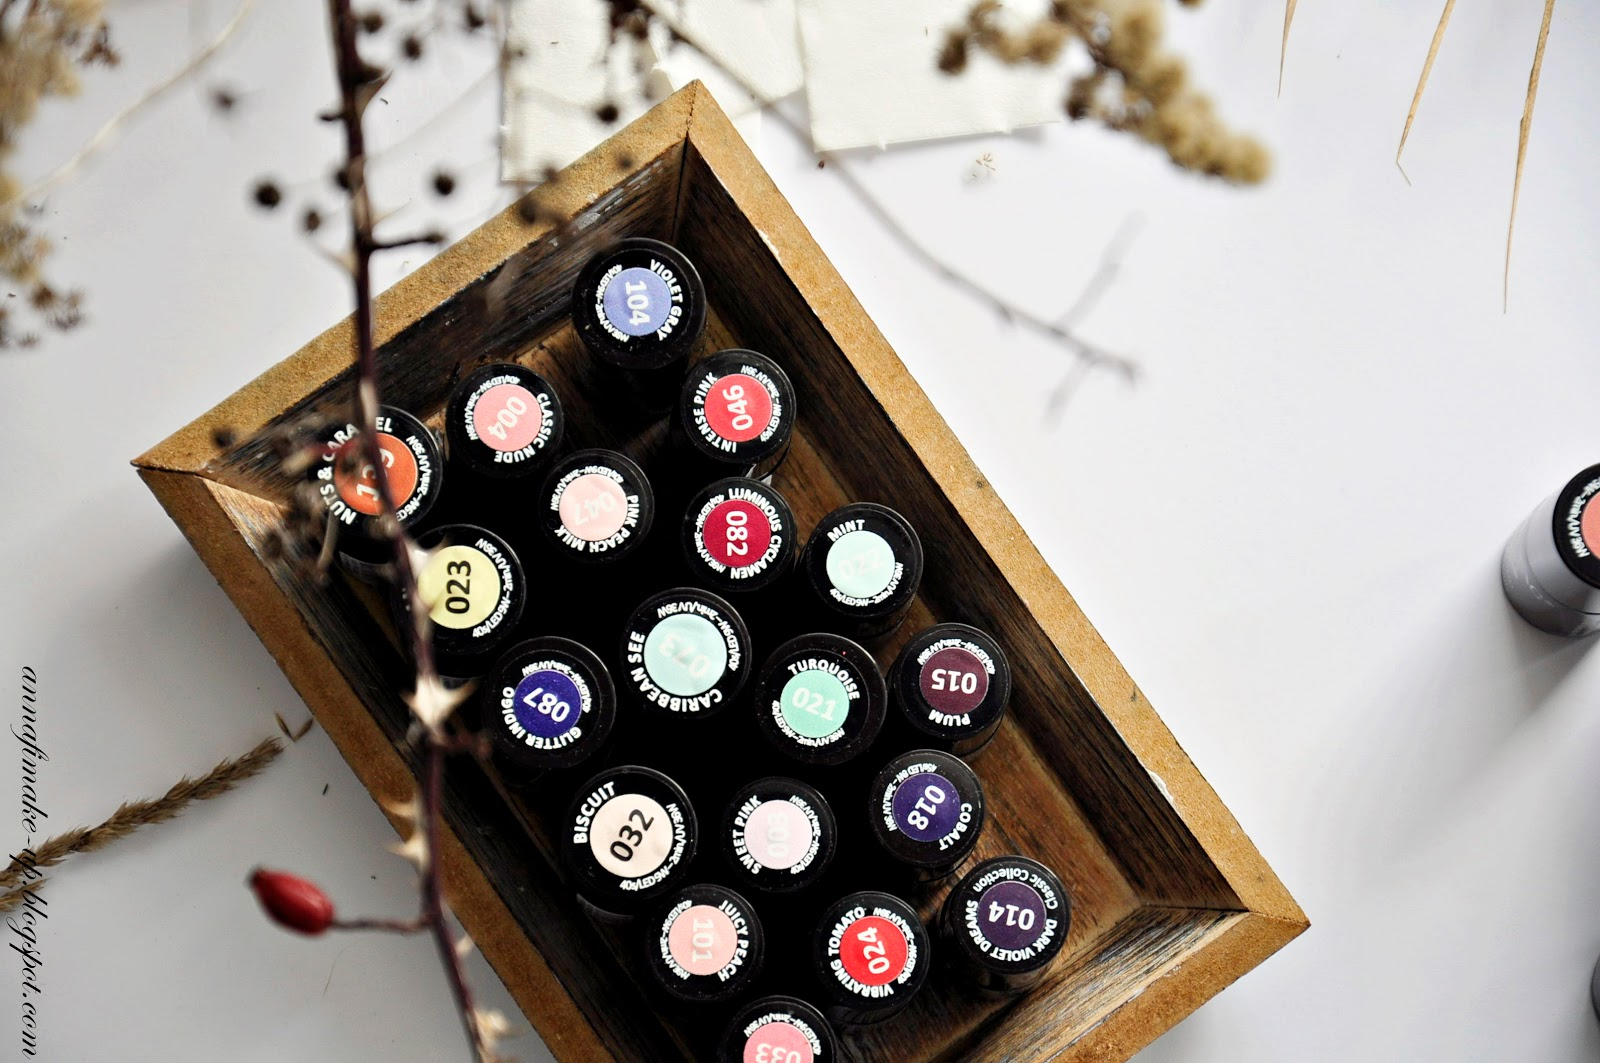 diamond ring 144, creamy muffin 136, frappe 135, classic wine 028, intense red 027,